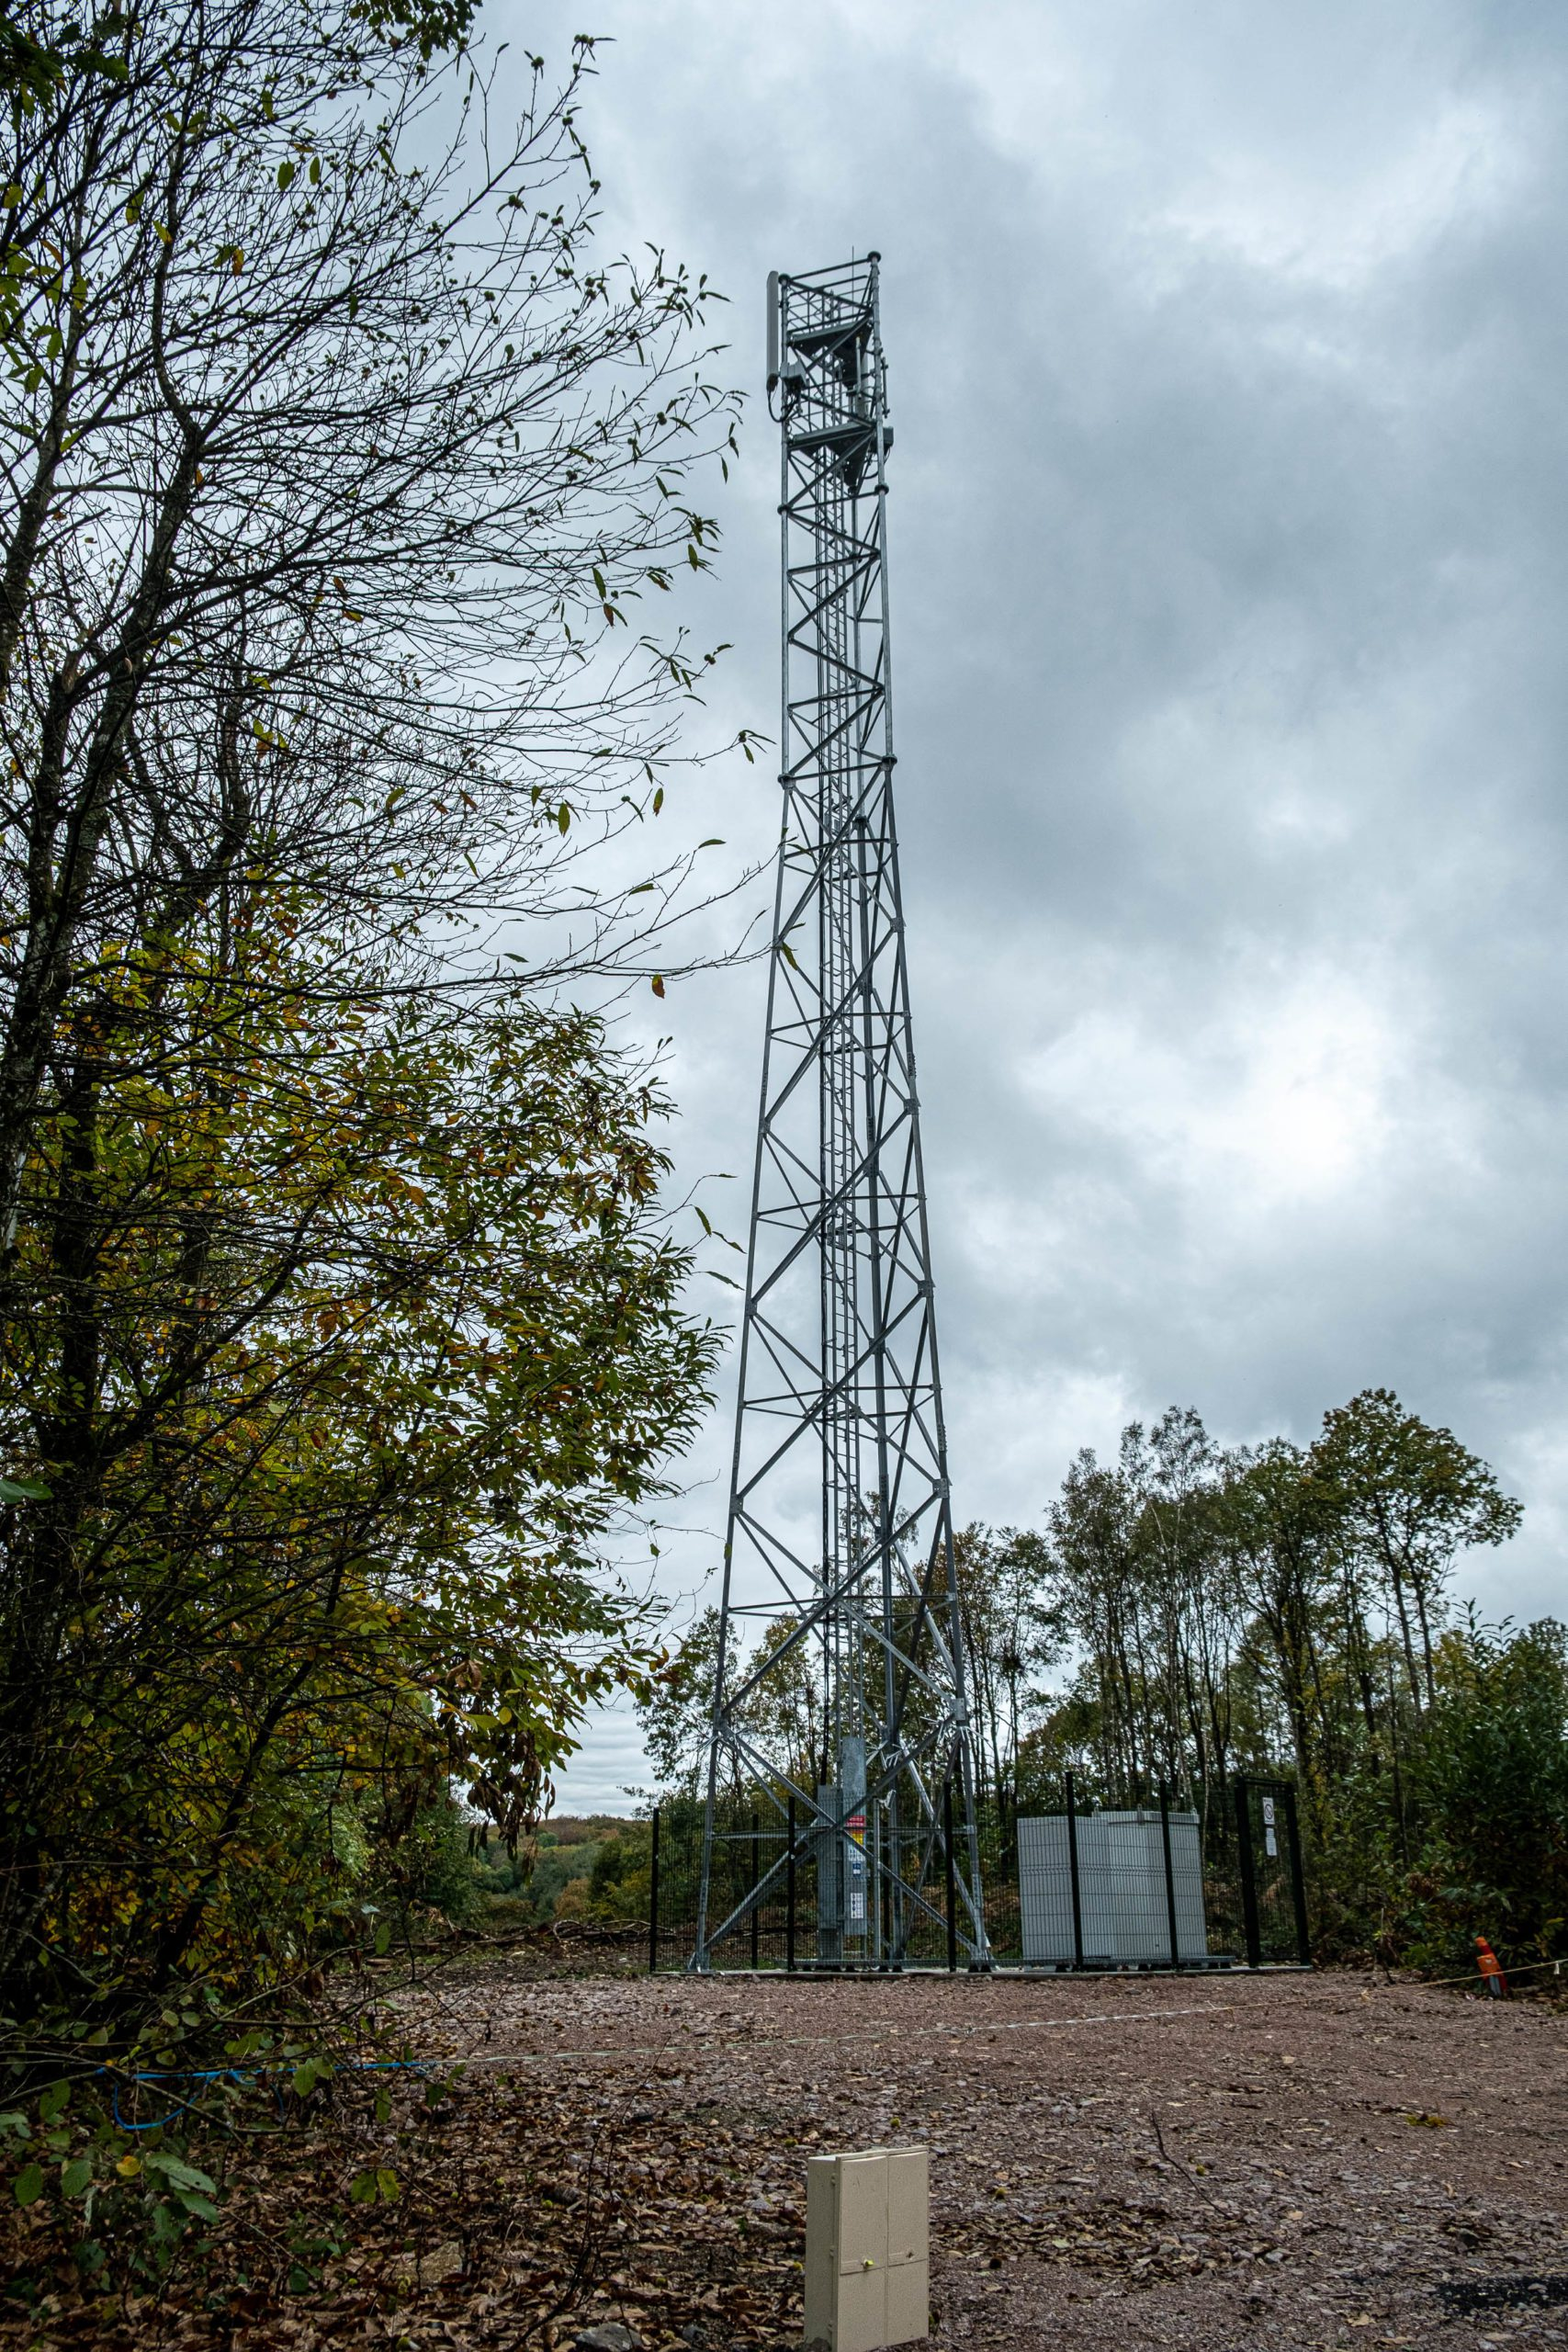 While 5G is about to make its appearance in France, the installation of new mobile telephone relay antennas is continuing in certain rural areas. Uchon, 17 October 2020. Florian Jannot-Caeillete / APJ / Hans Lucas.